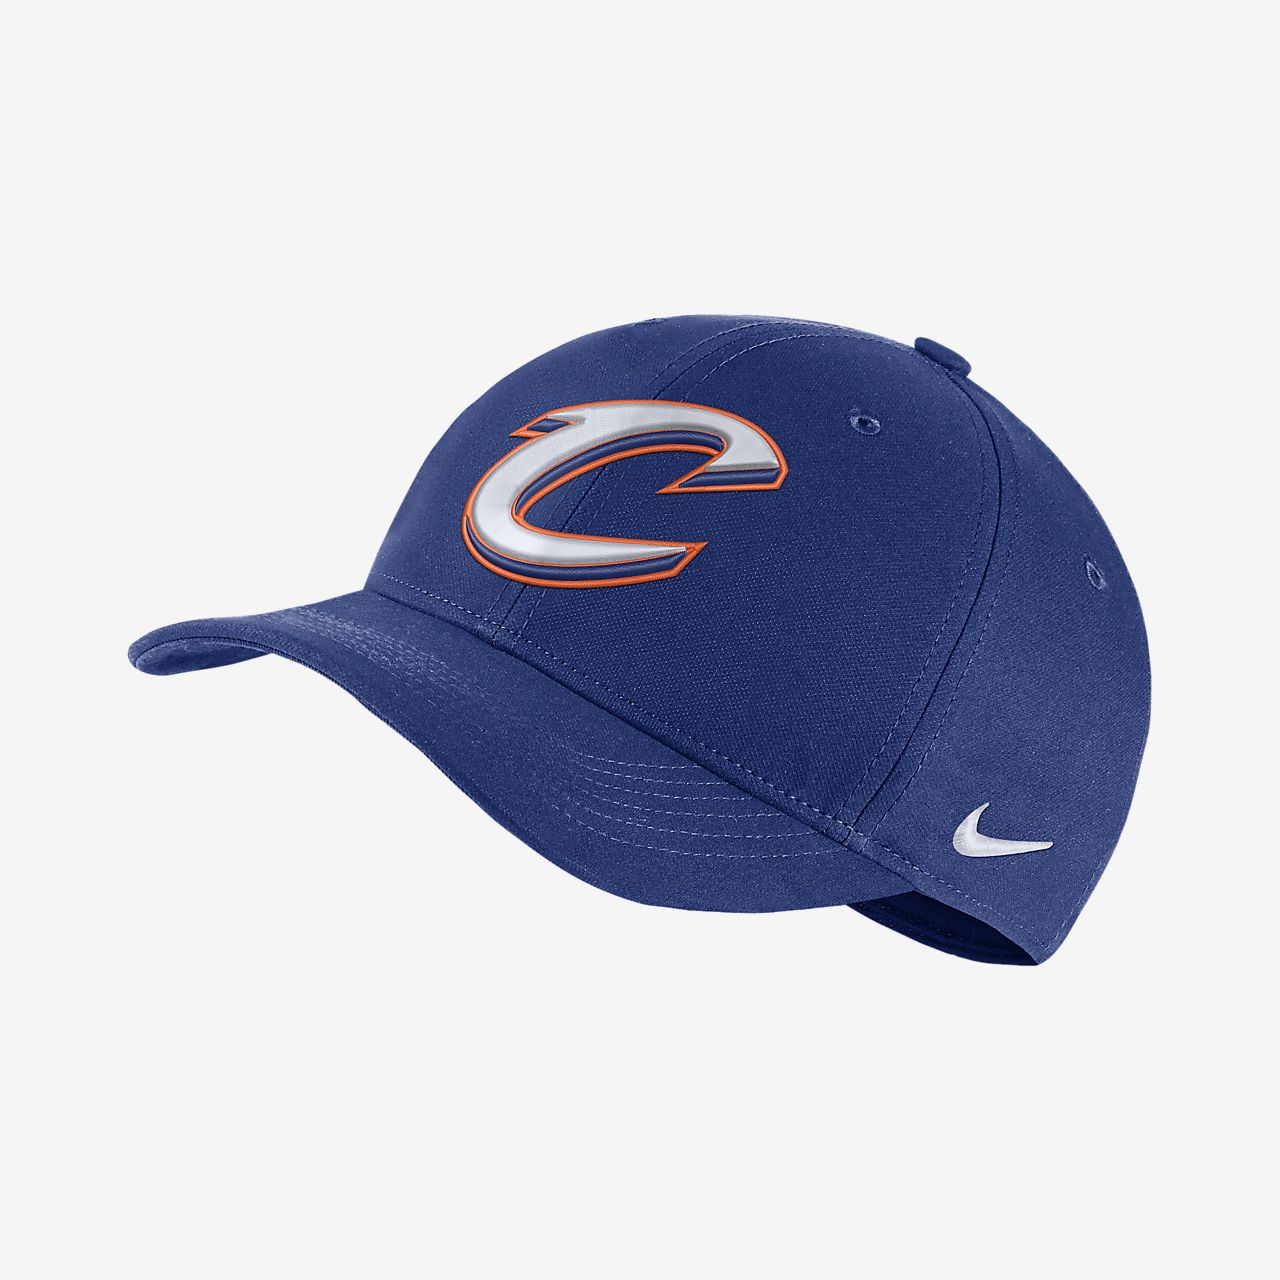 Cleveland Cavaliers City Edition Nike AeroBill Classic99 NBA Hat